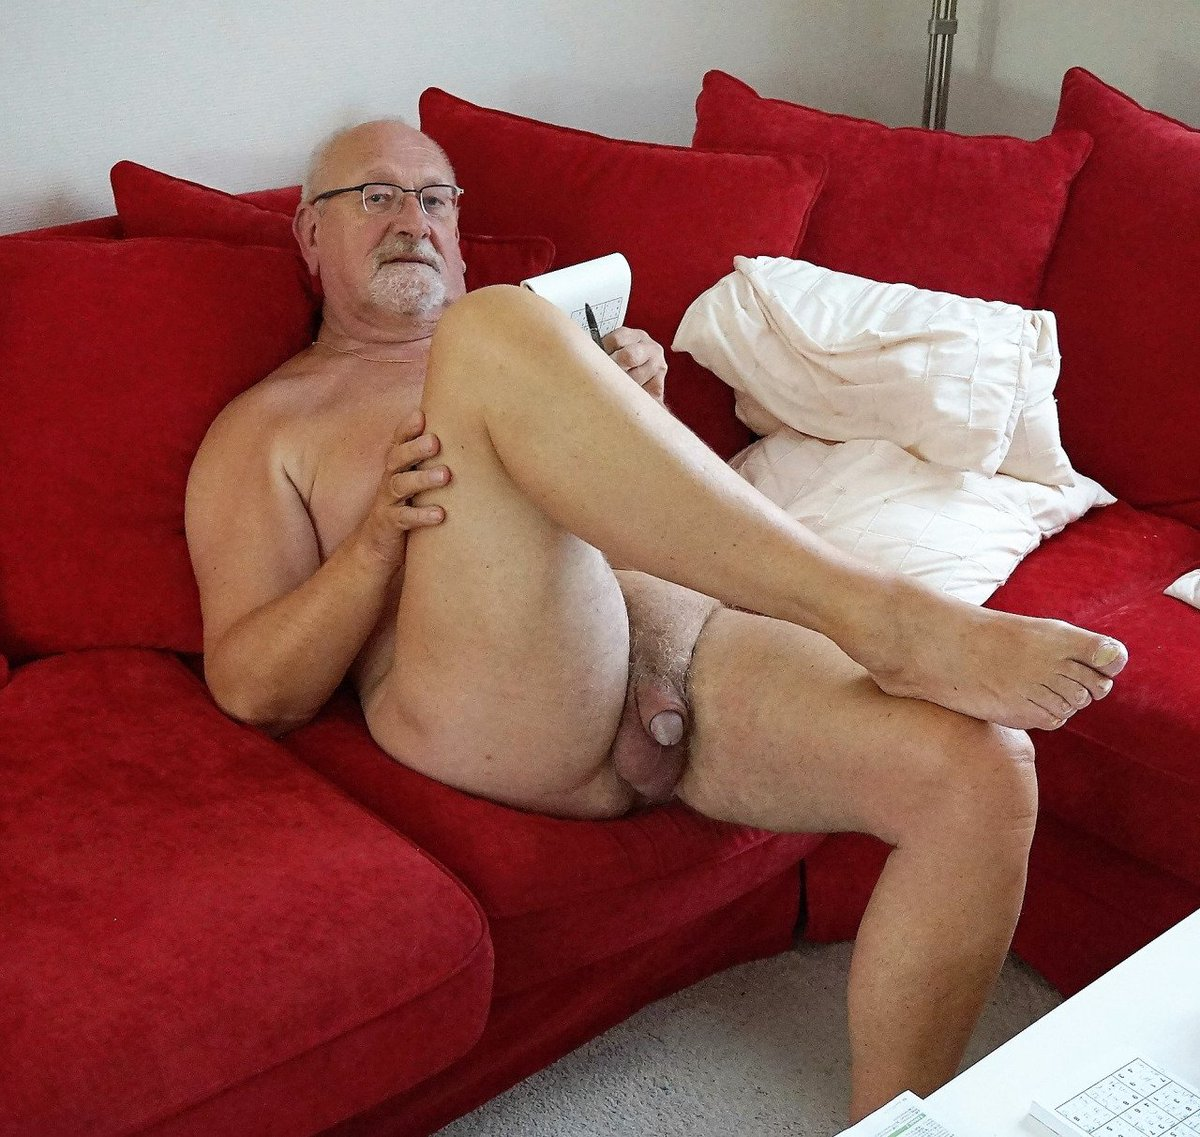 Bear Gay Maduros click full video #grandpa #gay #daddy #gaybear เก no twitter